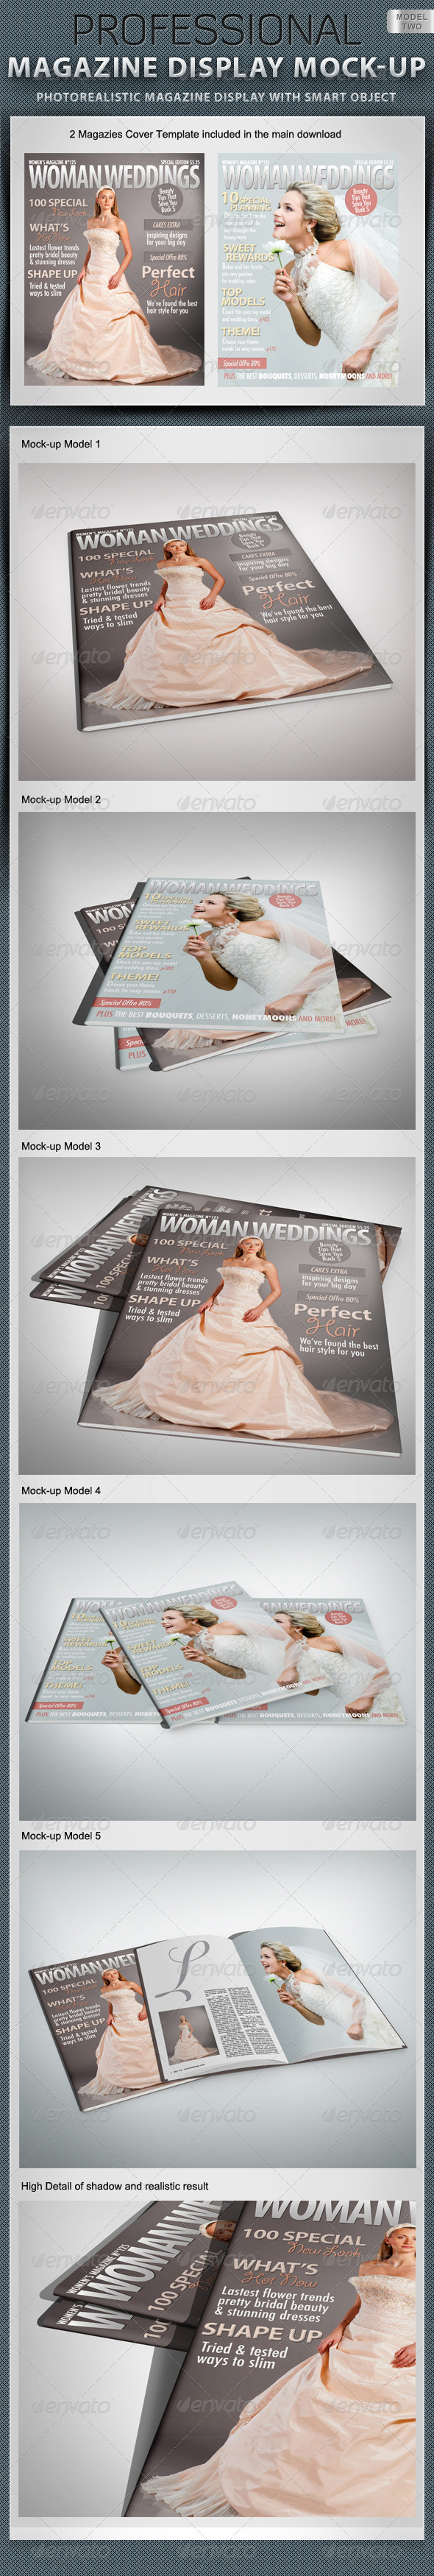 Professional Magazine Display Mock-up V2 - Magazines Print